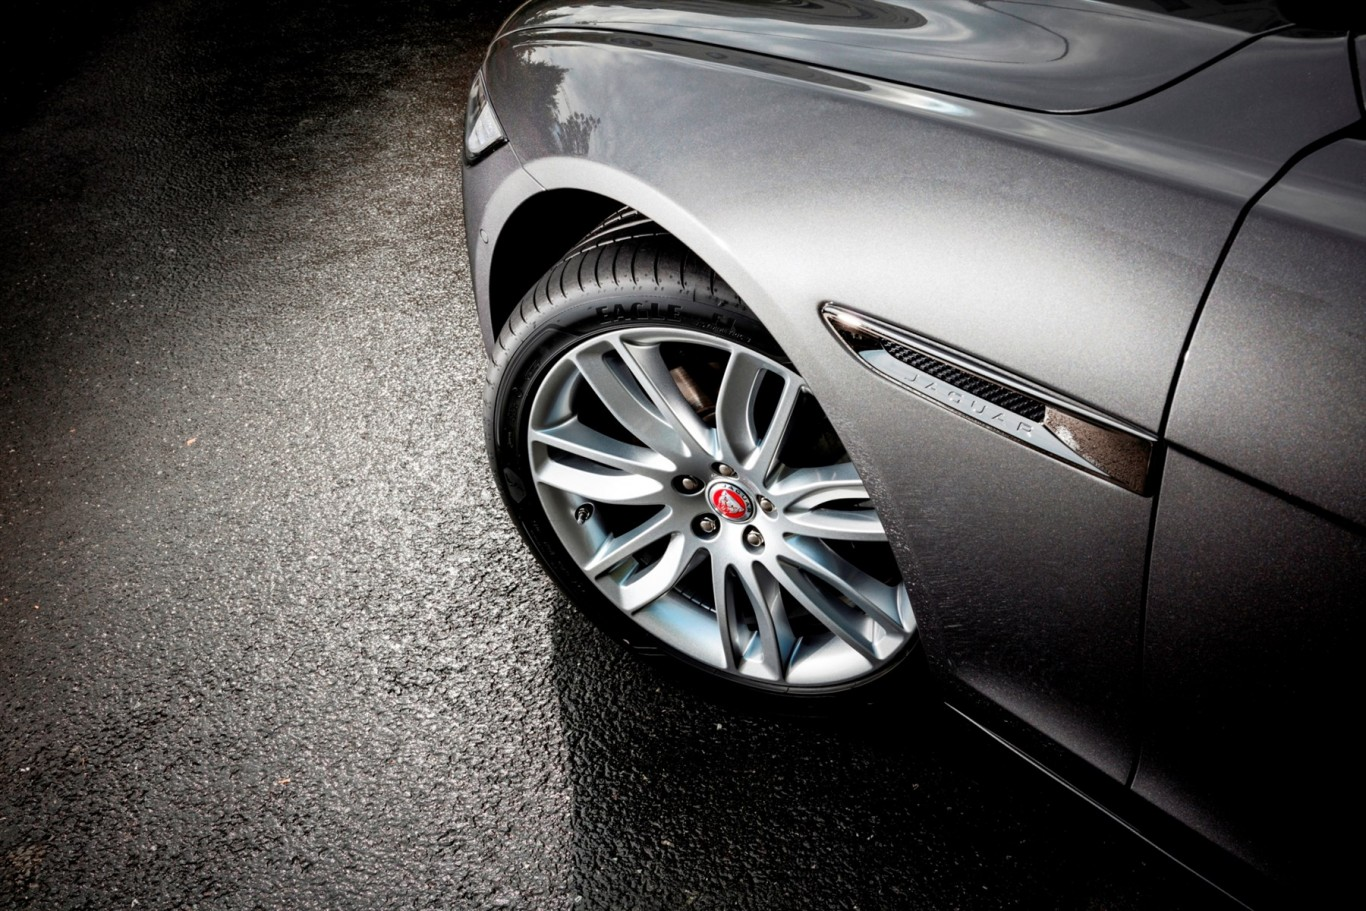 New Goodyear Eagle F1 Asymmetric 3 makes appearance on Jaguar XF